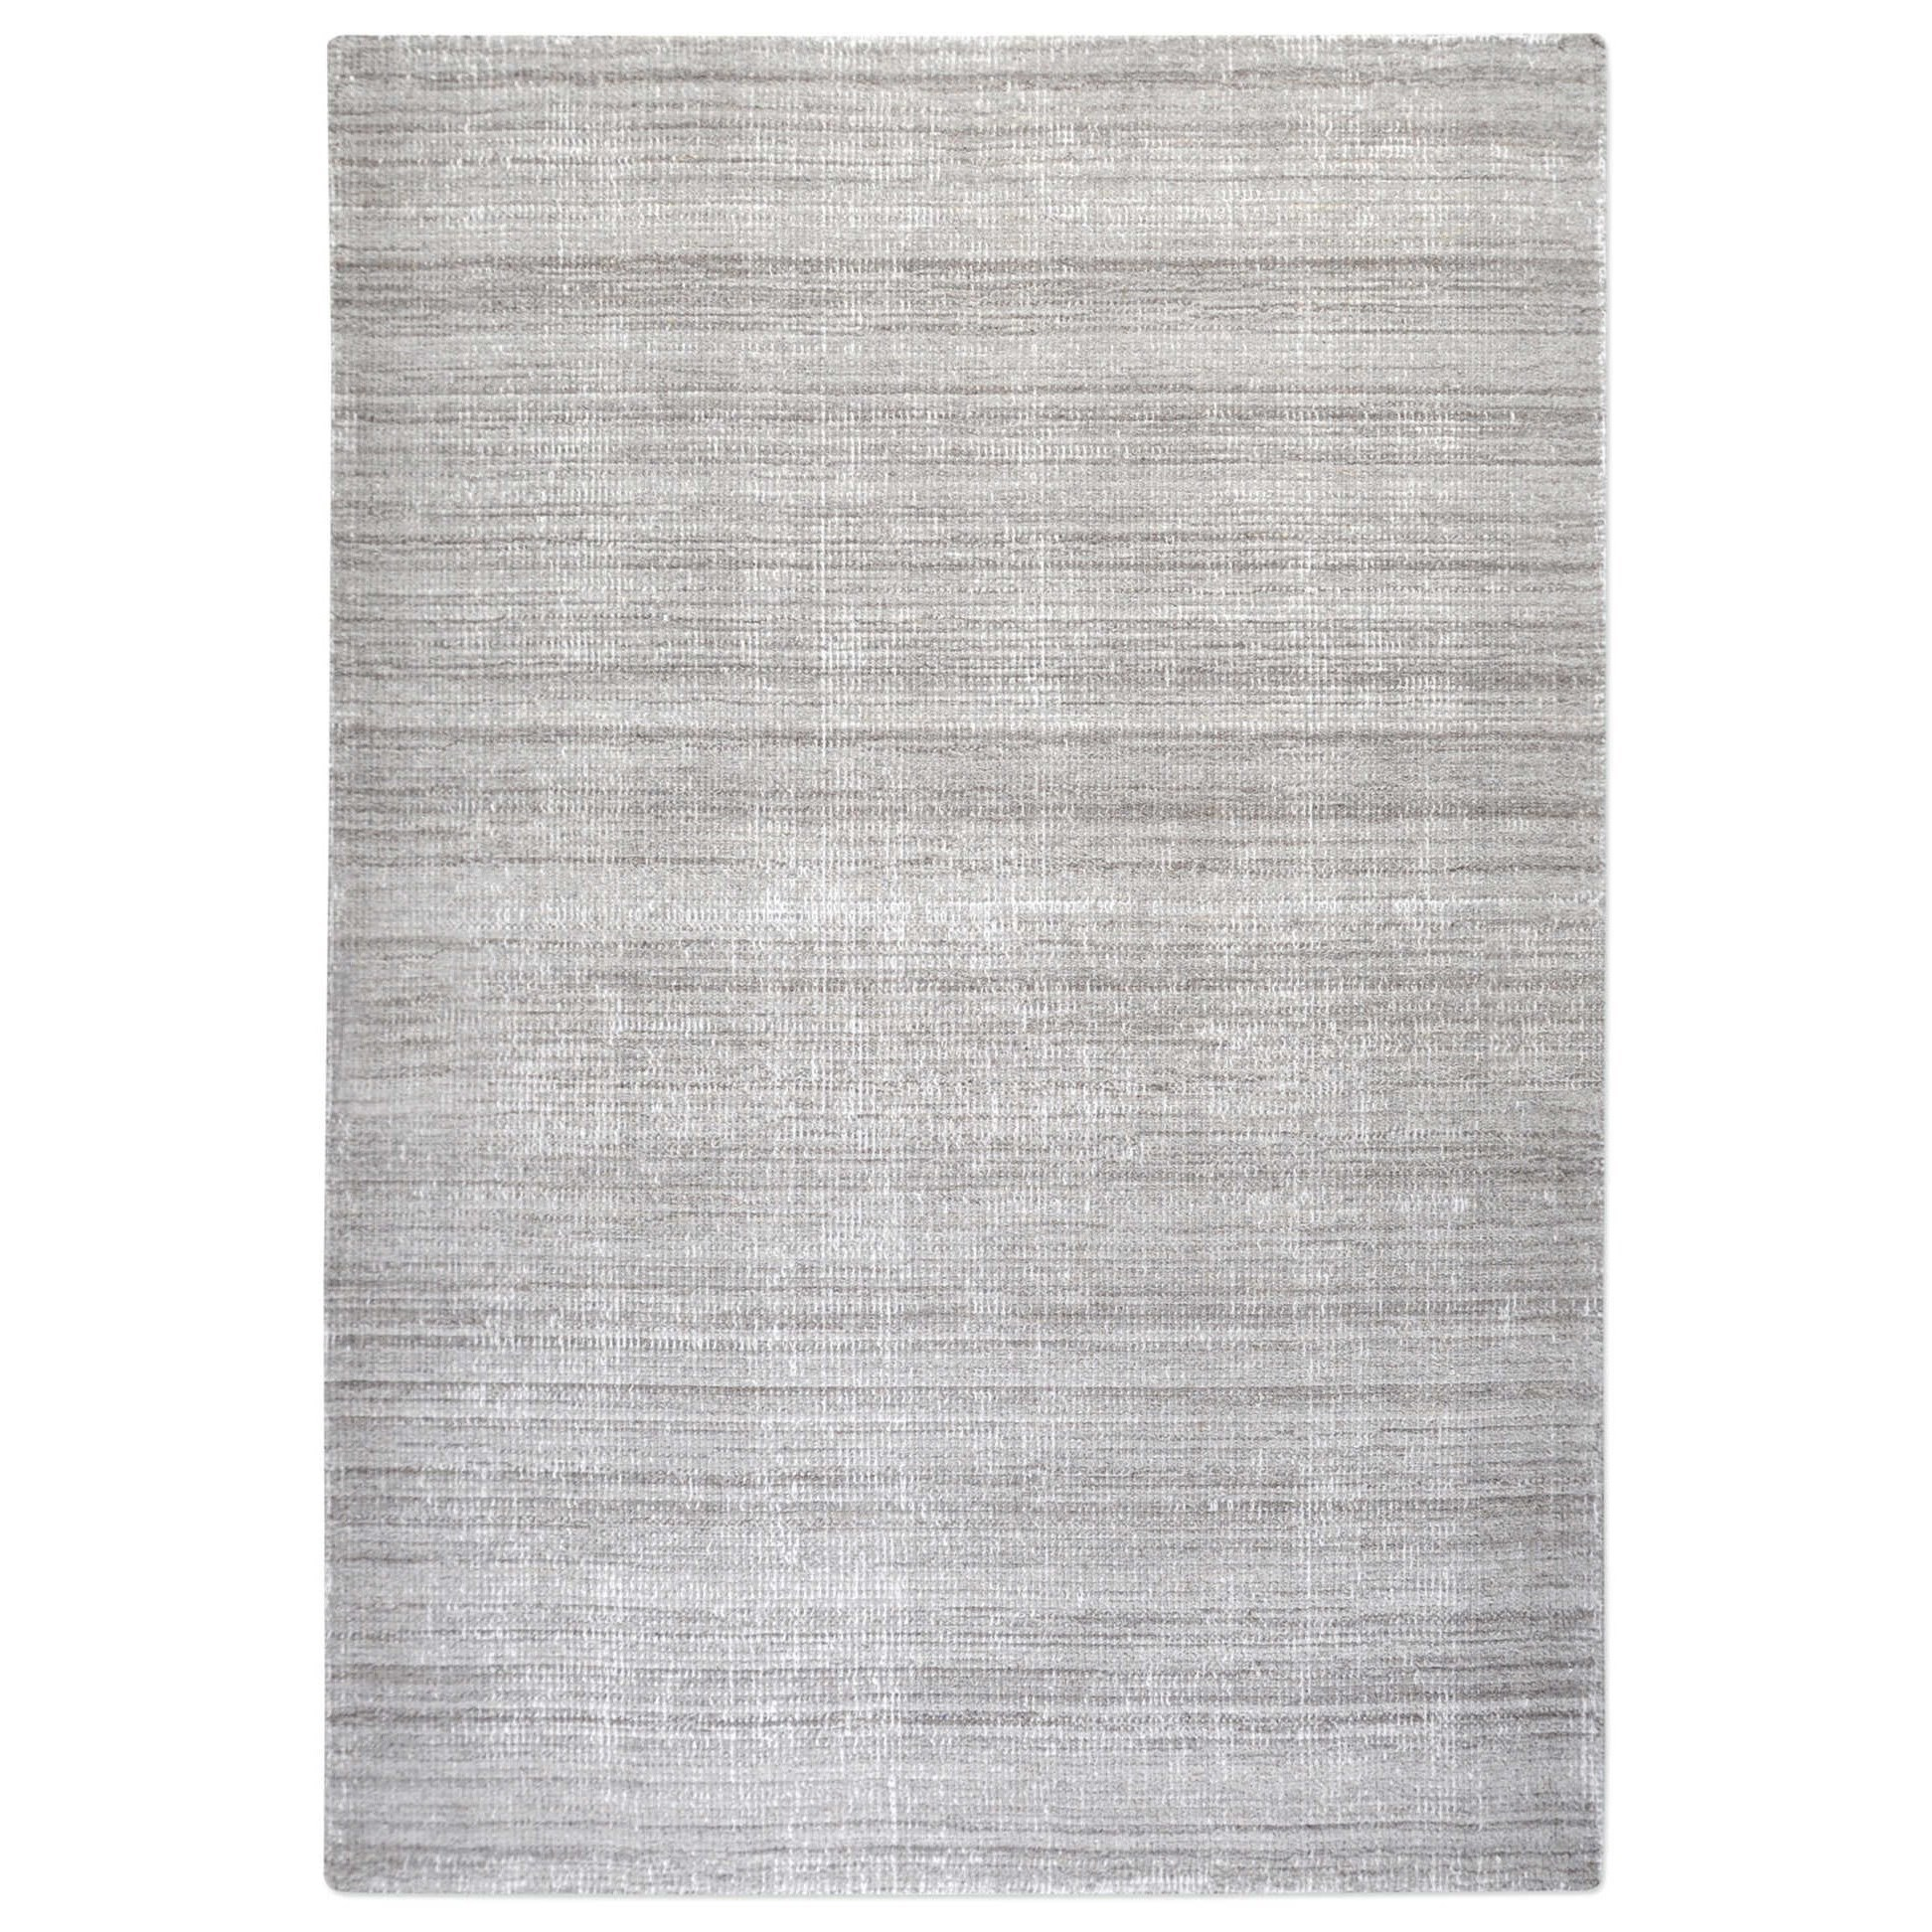 Rugs Medanos Gray 5 x 8 Rug by Uttermost at Adcock Furniture